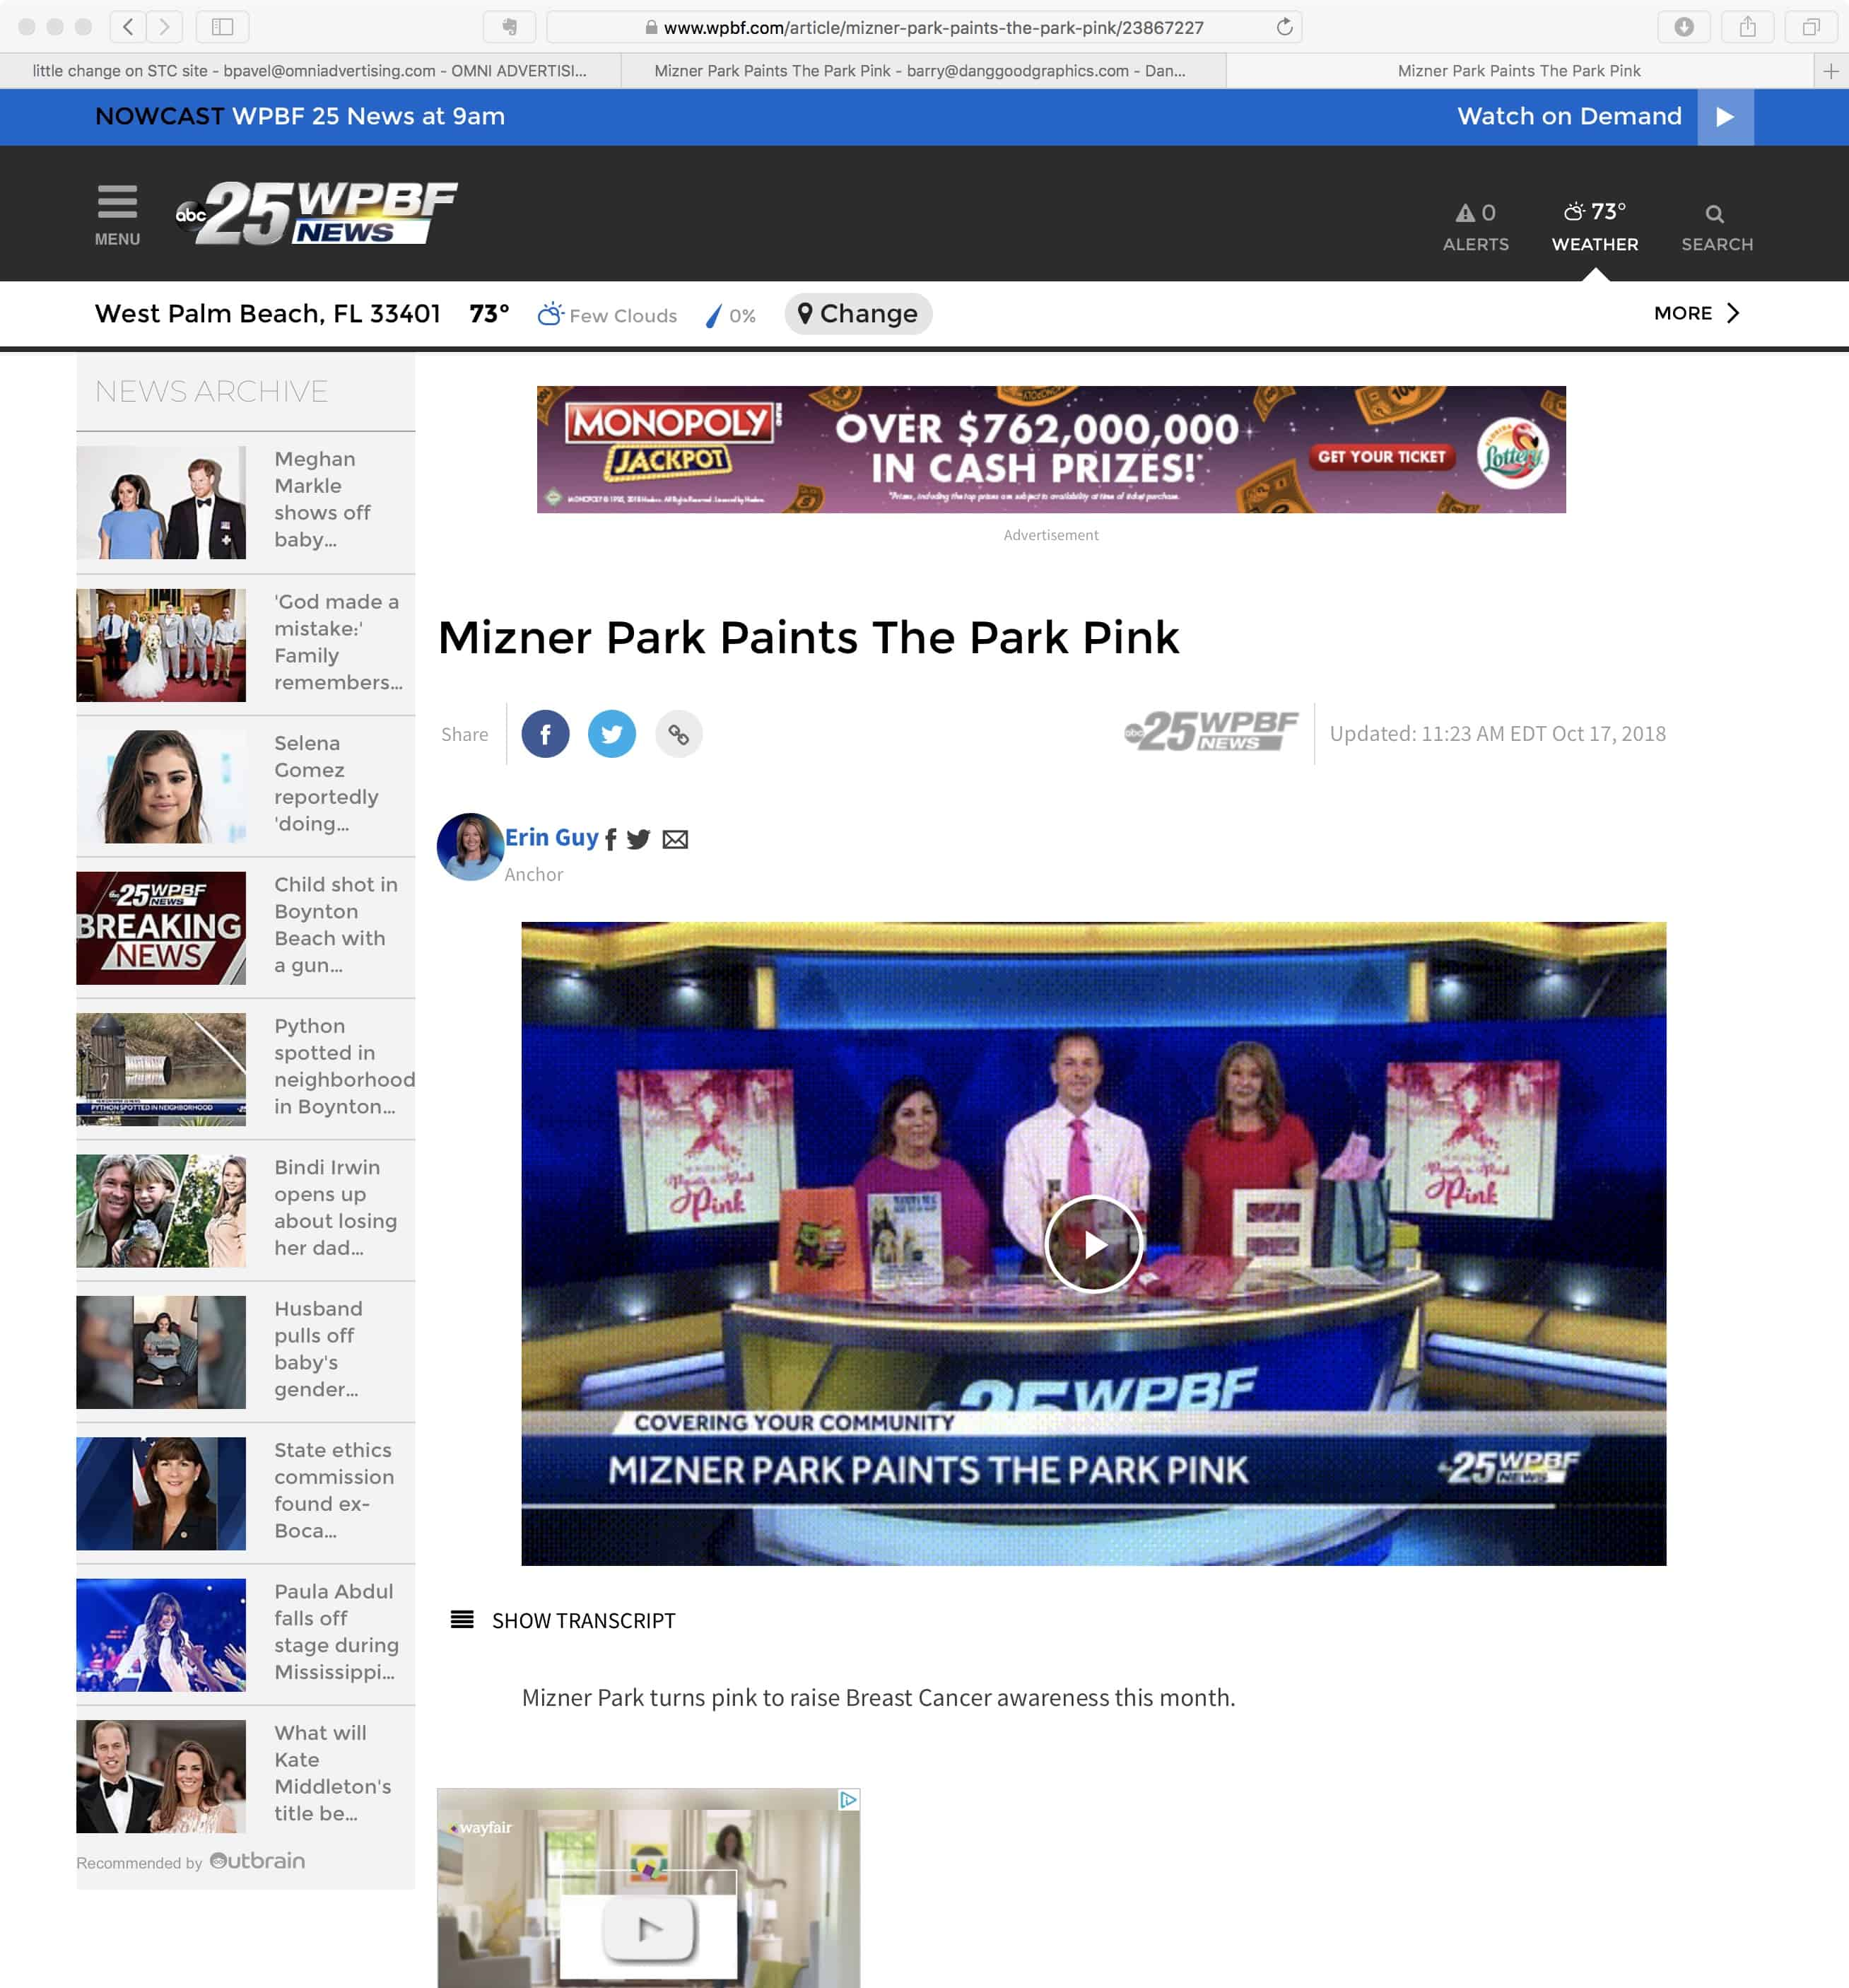 Polin PR placement WPBF.com for City of Boca Raton